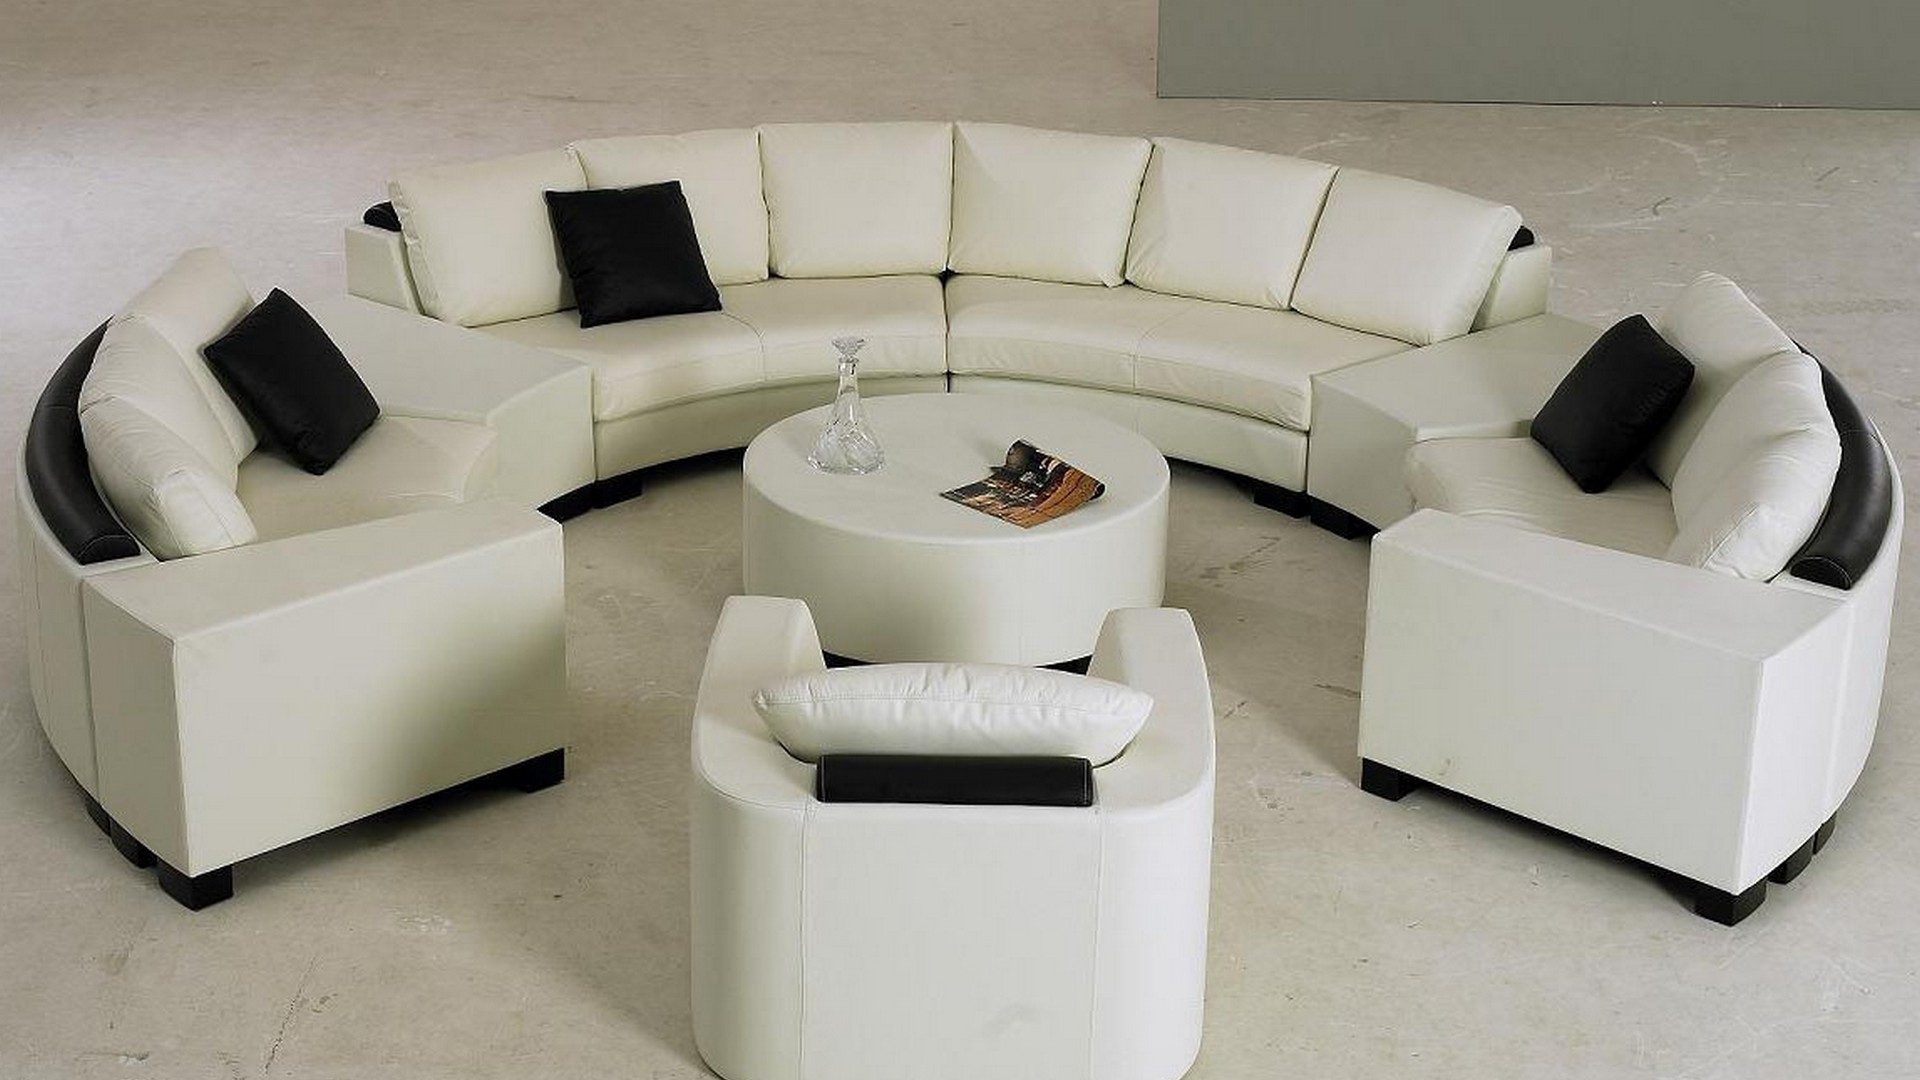 Popular Round Sofas Pertaining To Engagng White Half Round Sofa With Black Pillows And Rond Table (View 6 of 15)